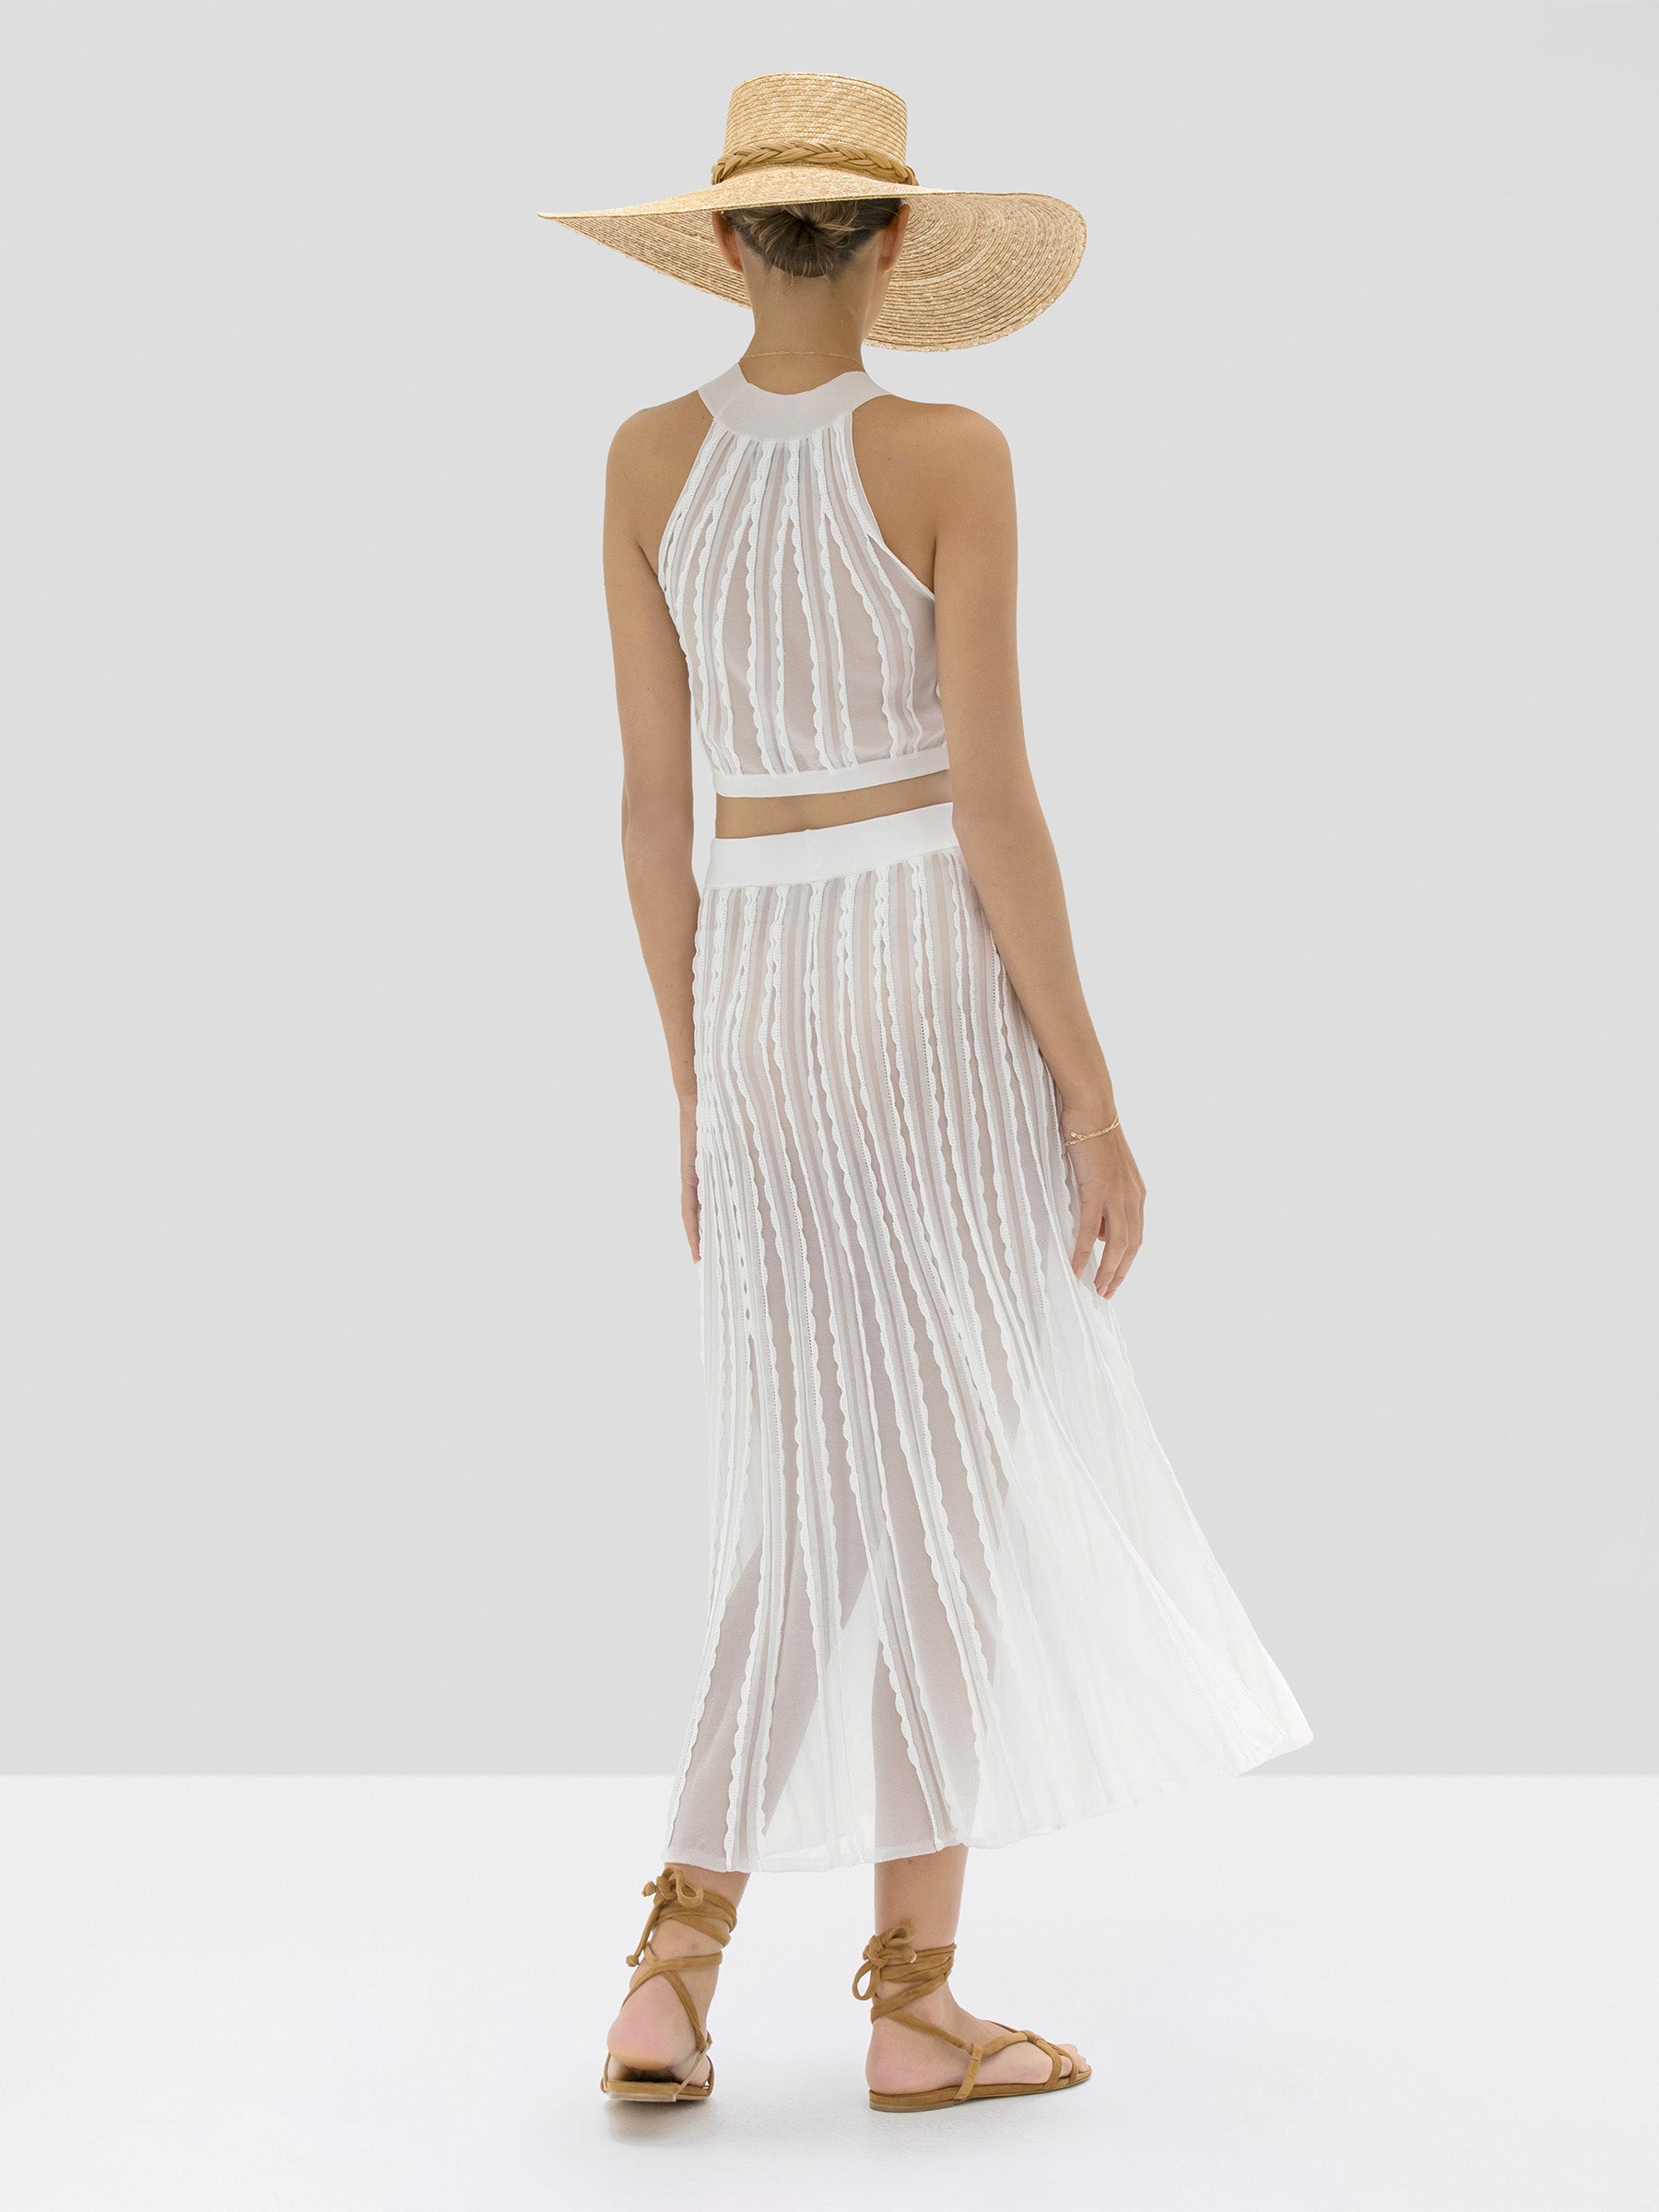 Alexis Keva Crop Top and Zea Skirt in White from Spring Summer 2020 Collection - Rear View